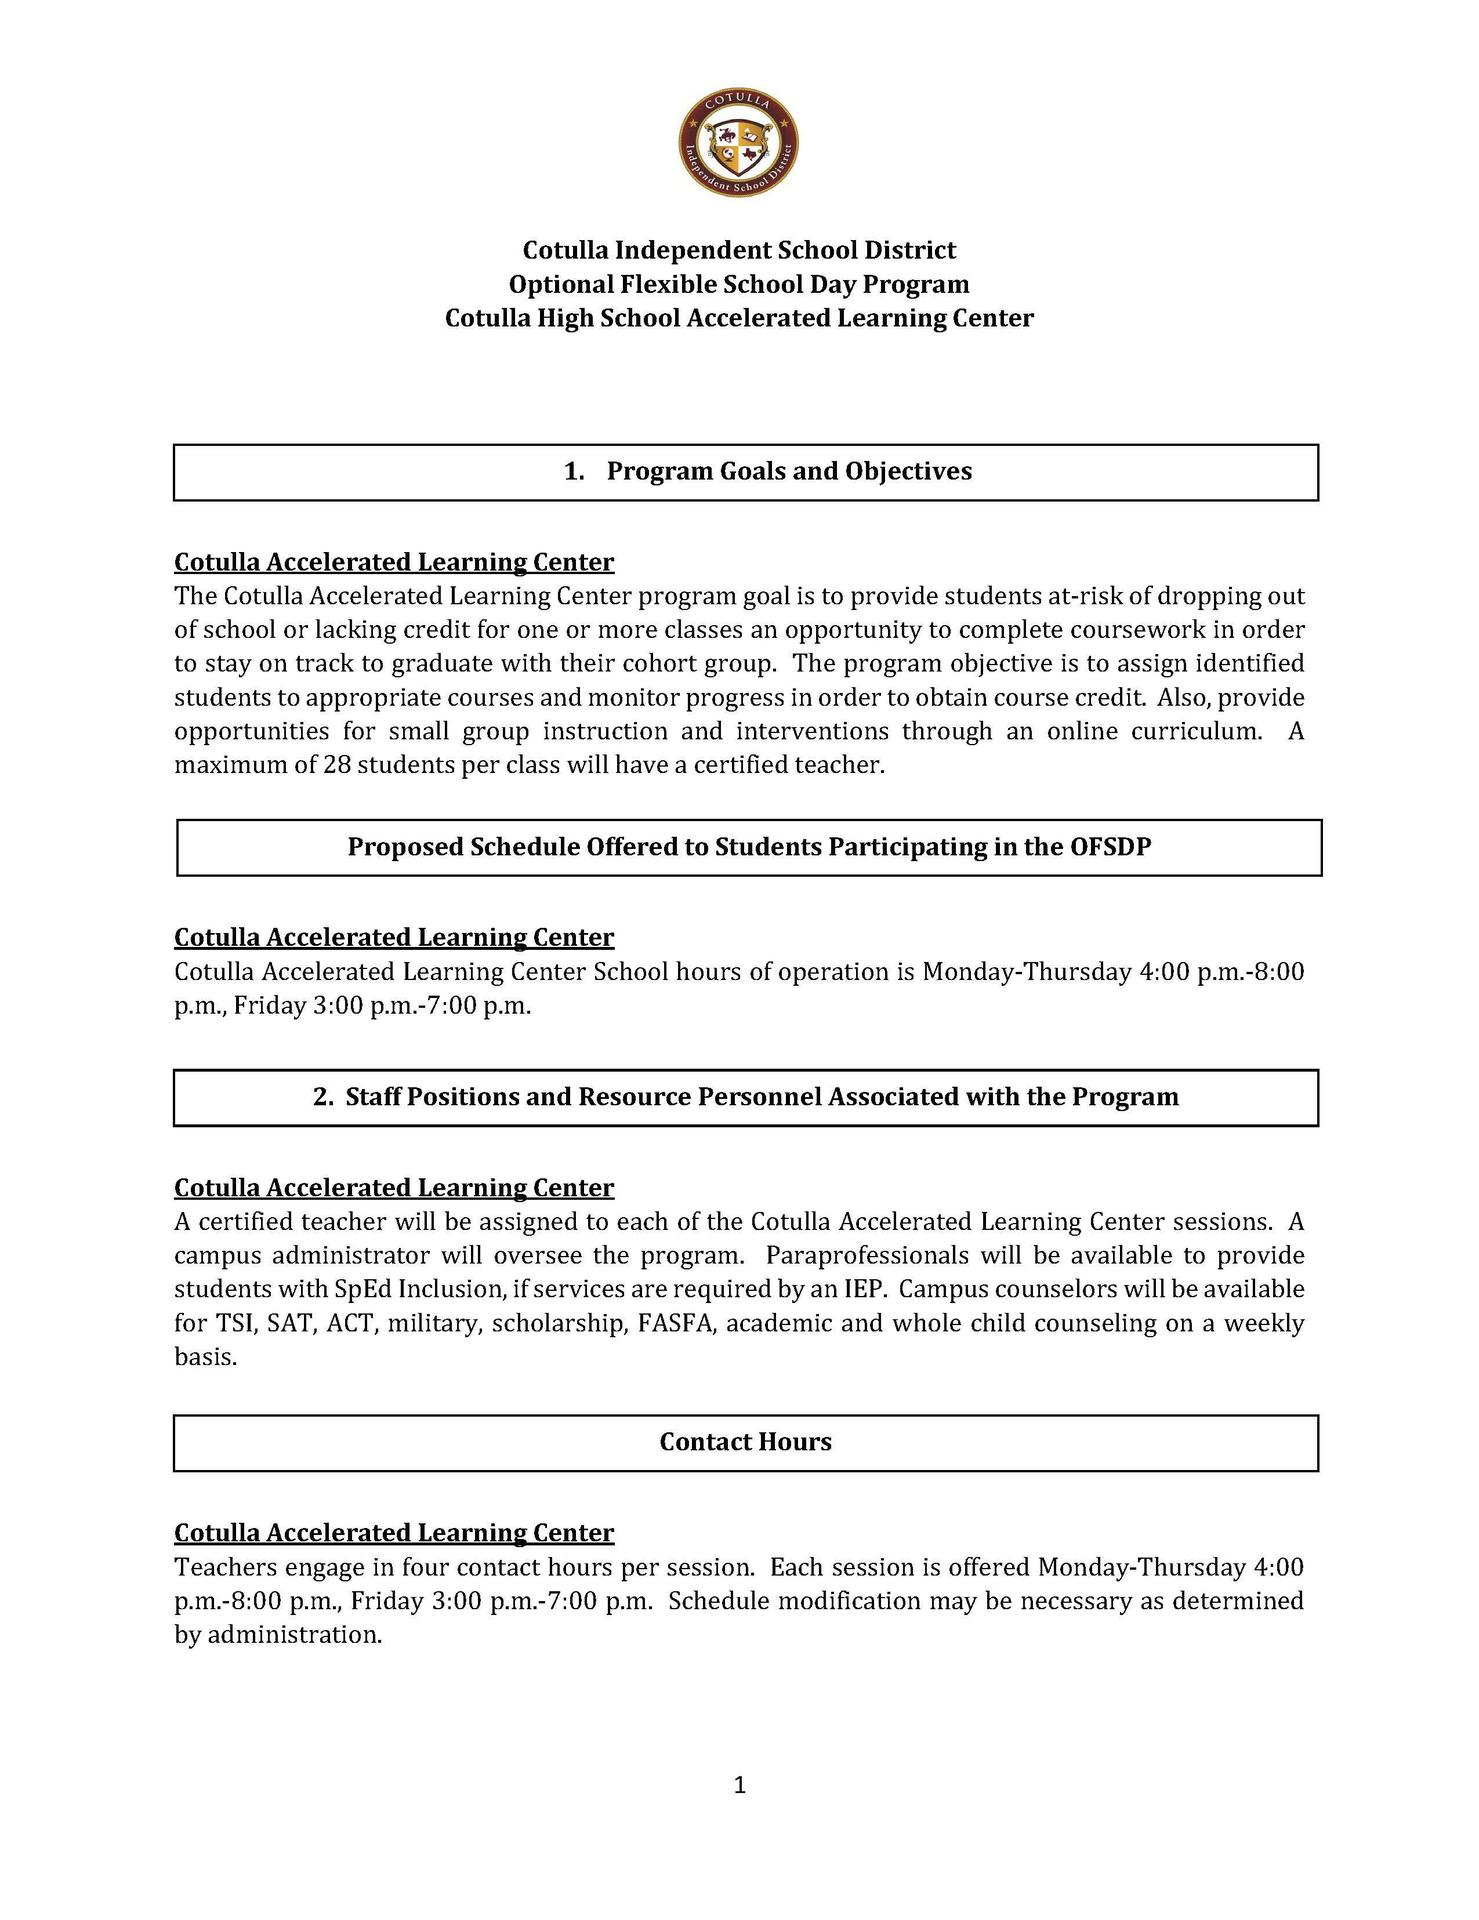 ofsdp page 1